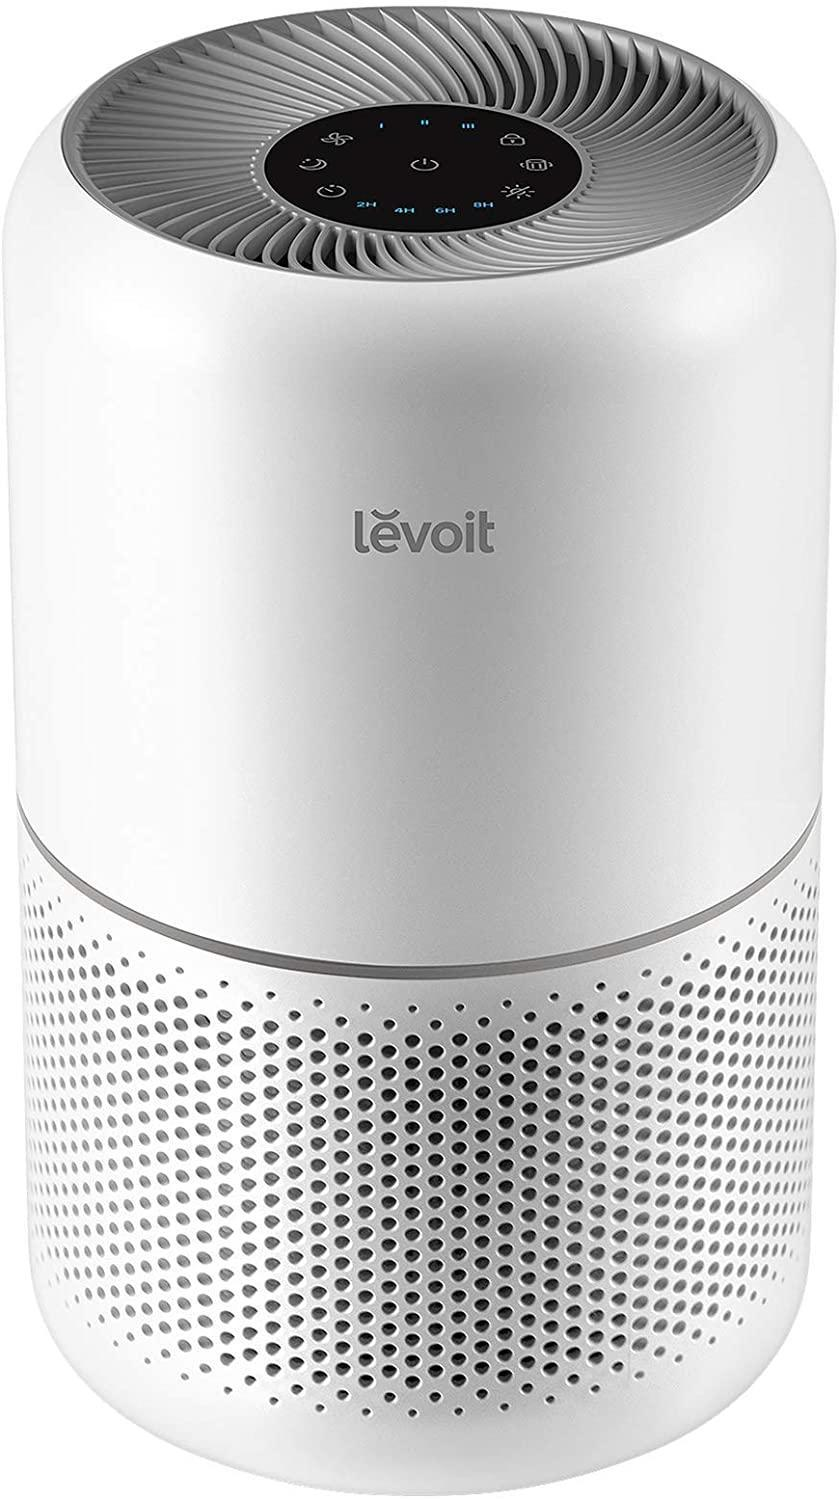 """<h2>Best Customizable Air Purifier</h2><br>Levoit's purifier offers three types of replacement filters that you can choose depending on your particular need: an original filter, a pet allergy filter, and a toxin-absorbing filter. <br><br><strong>Levoit</strong> Air Purifier for Home Allergies, $, available at <a href=""""https://amzn.to/3uRBML3"""" rel=""""nofollow noopener"""" target=""""_blank"""" data-ylk=""""slk:Amazon"""" class=""""link rapid-noclick-resp"""">Amazon</a>"""